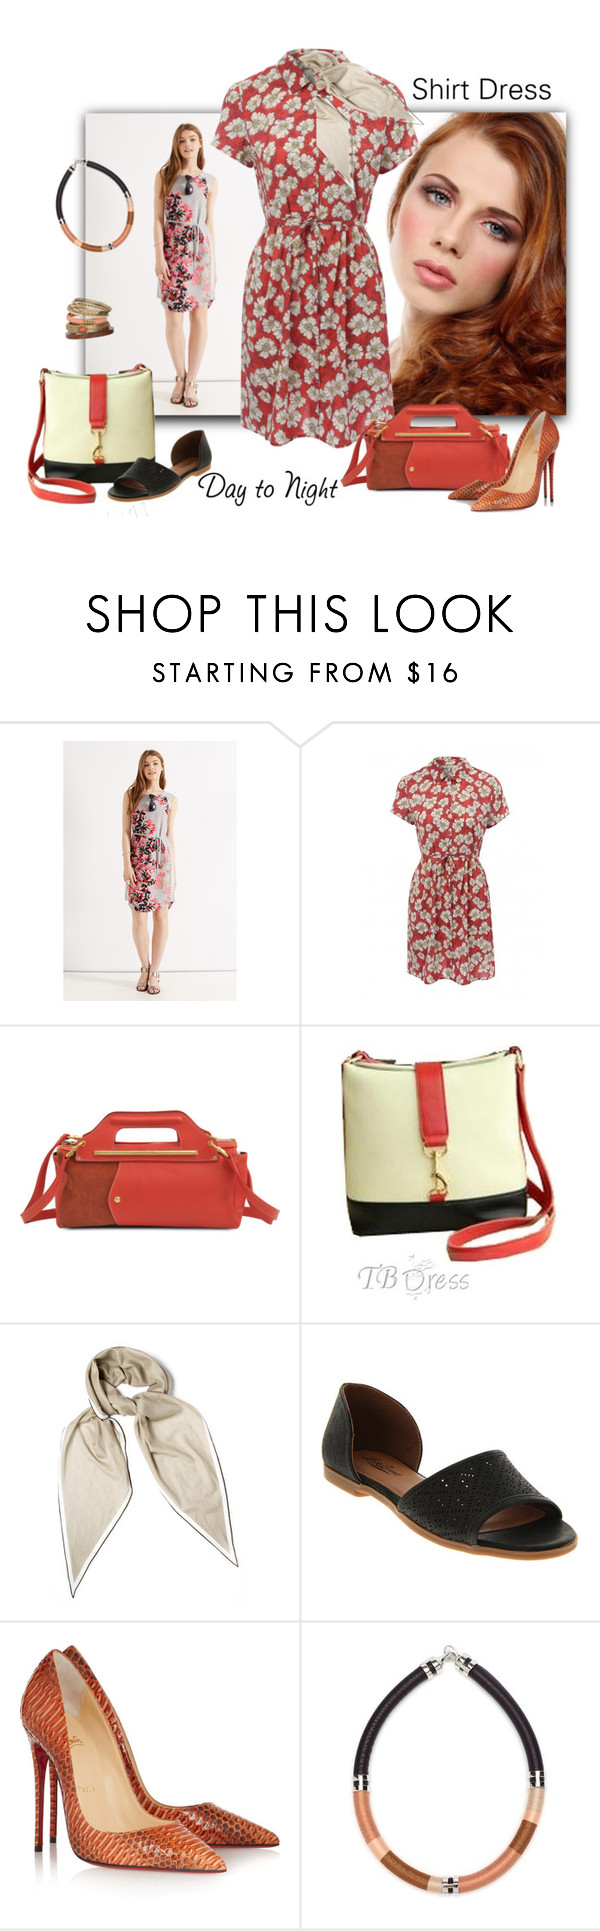 """""""Day to Night: Shirt Dress"""" by ysmn-pan ❤ liked on Polyvore featuring See by Chloé, Retrò, Hermès, Lucky Brand, Christian Louboutin, Lizzie Fortunato, Wallis, DayToNight and shirtdress"""